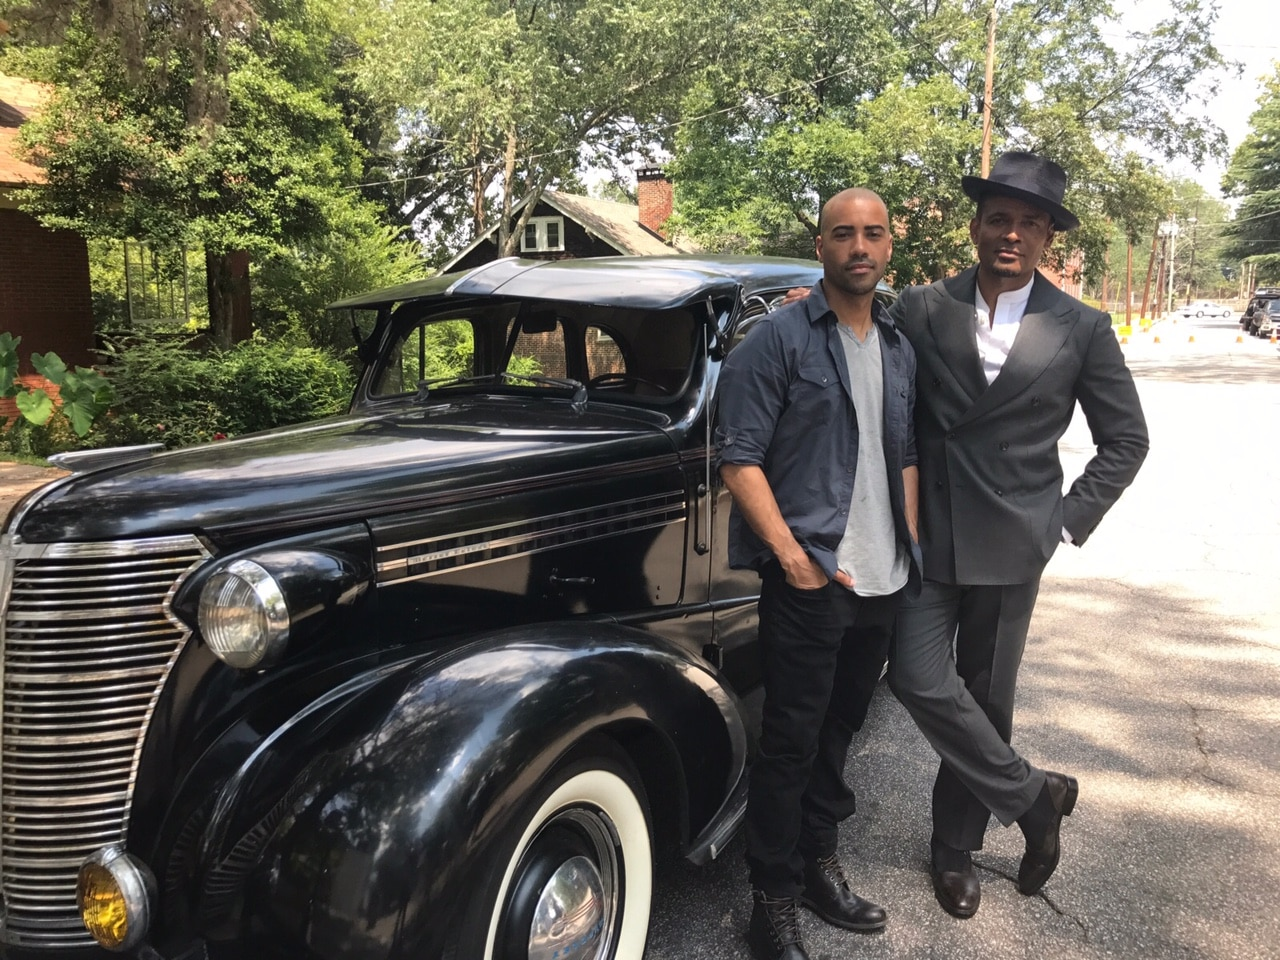 Superstition 11427 - Syfy Kicks Off Principal Photography on New Series Superstition